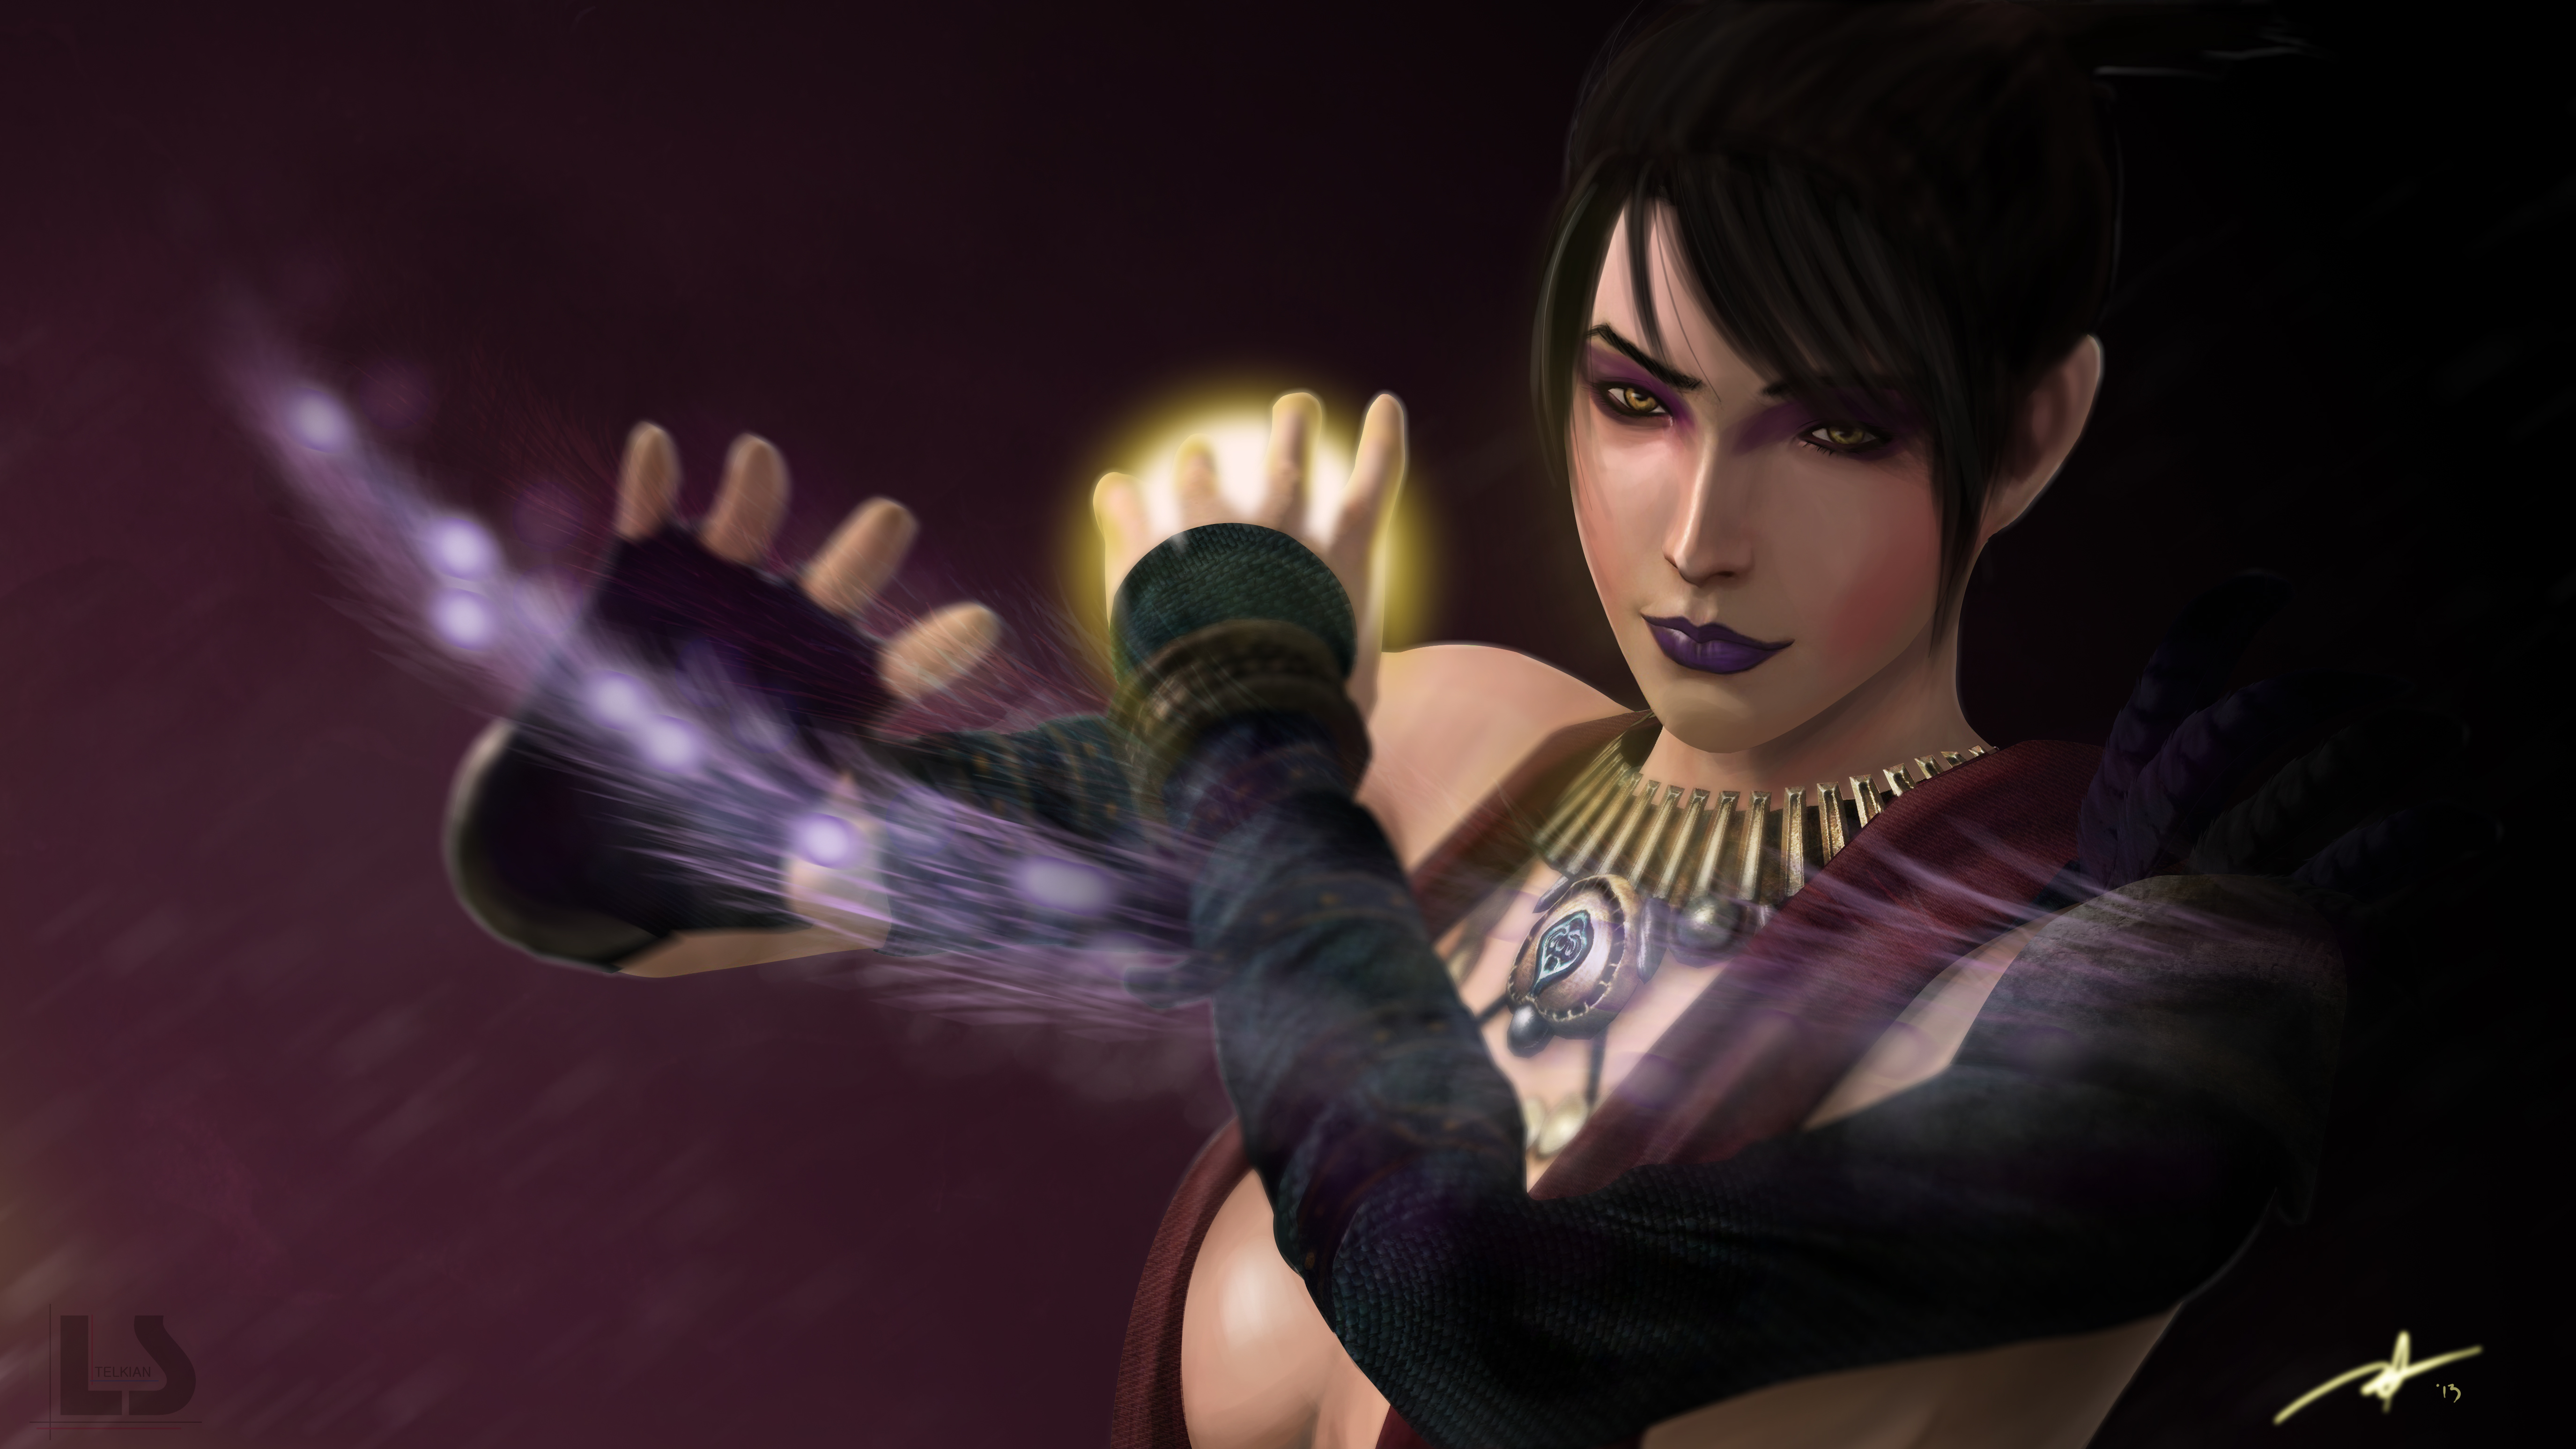 Dragon age morrigan by telkian on deviantart for Painting games com